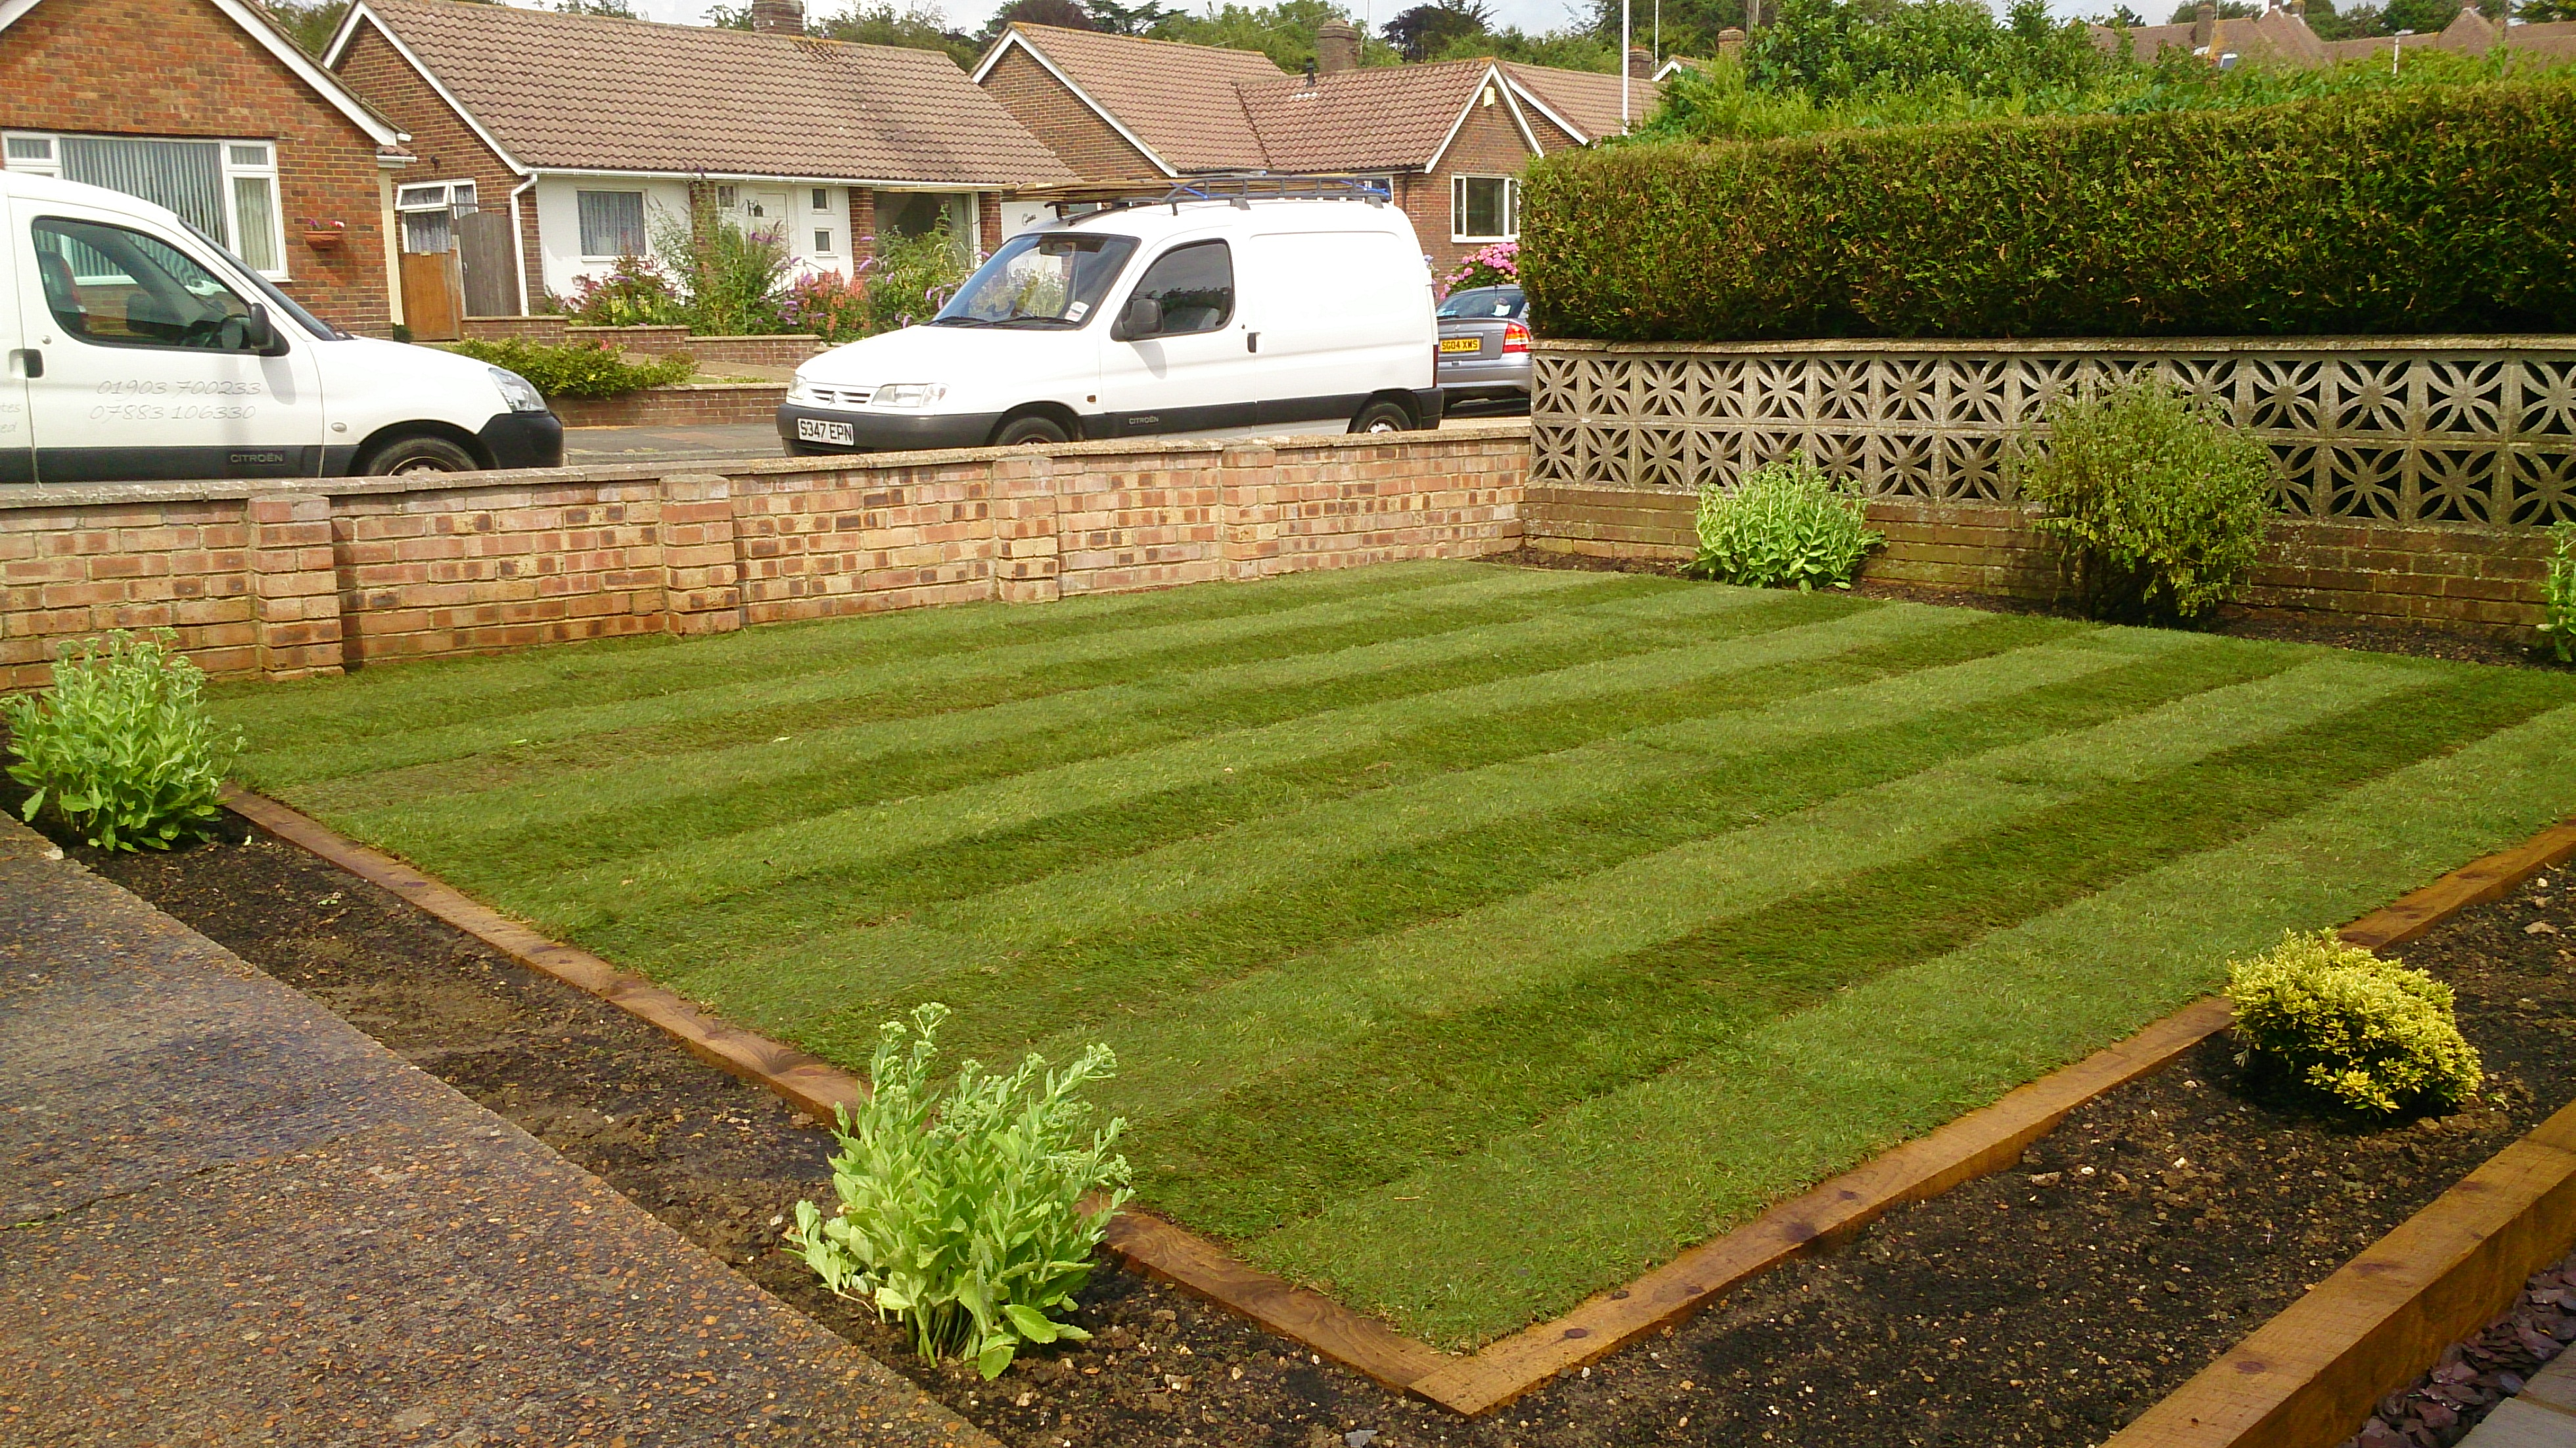 Sleeper edged lawn